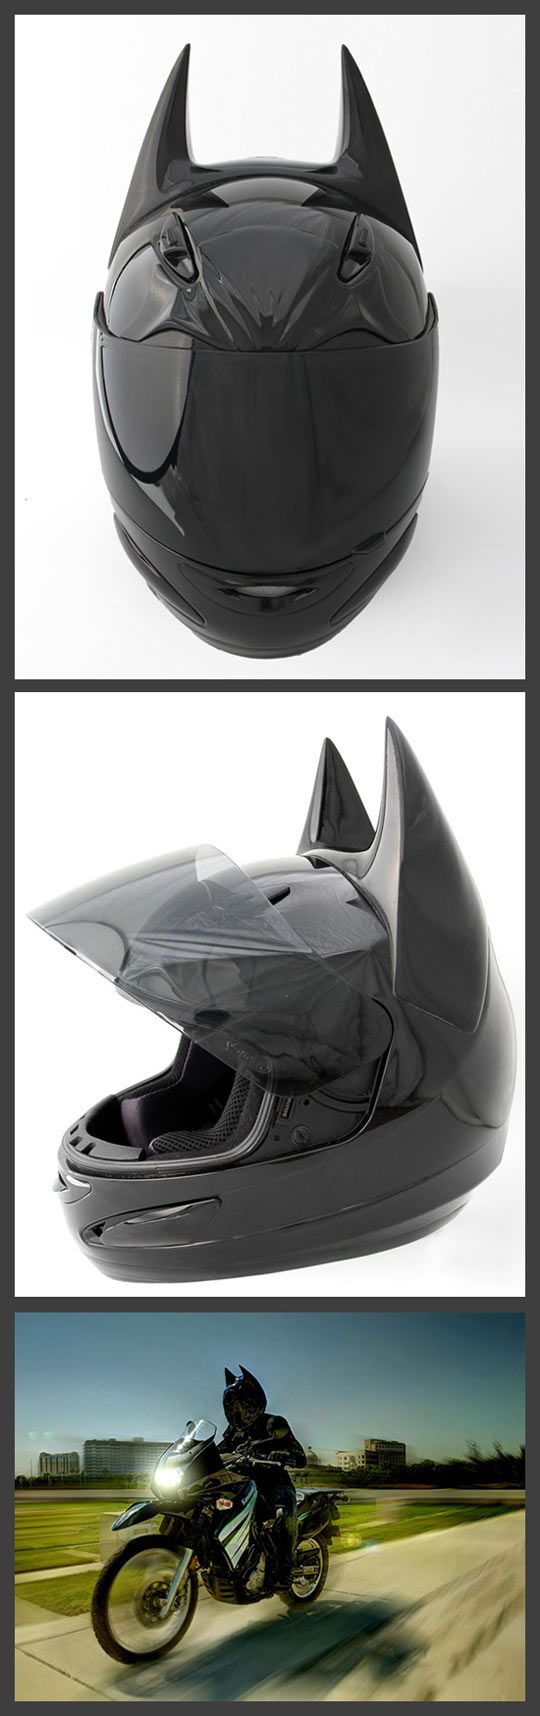 Batman helmet yes please!